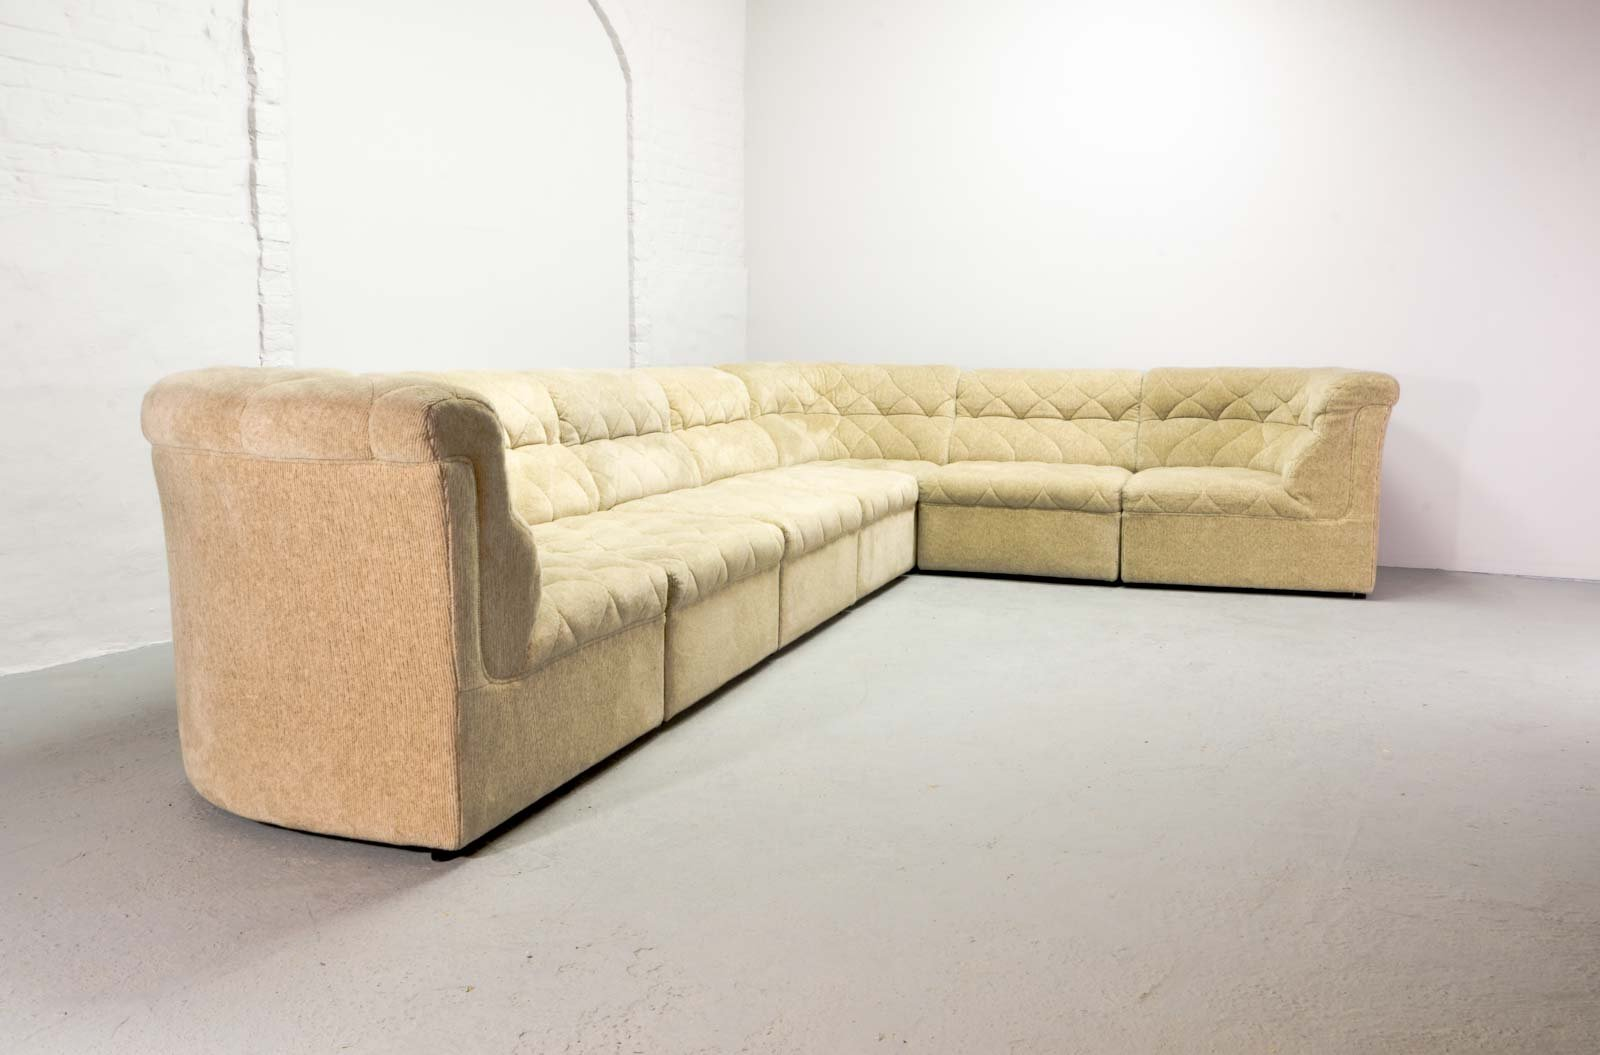 large modular sofa from laauser 1970s